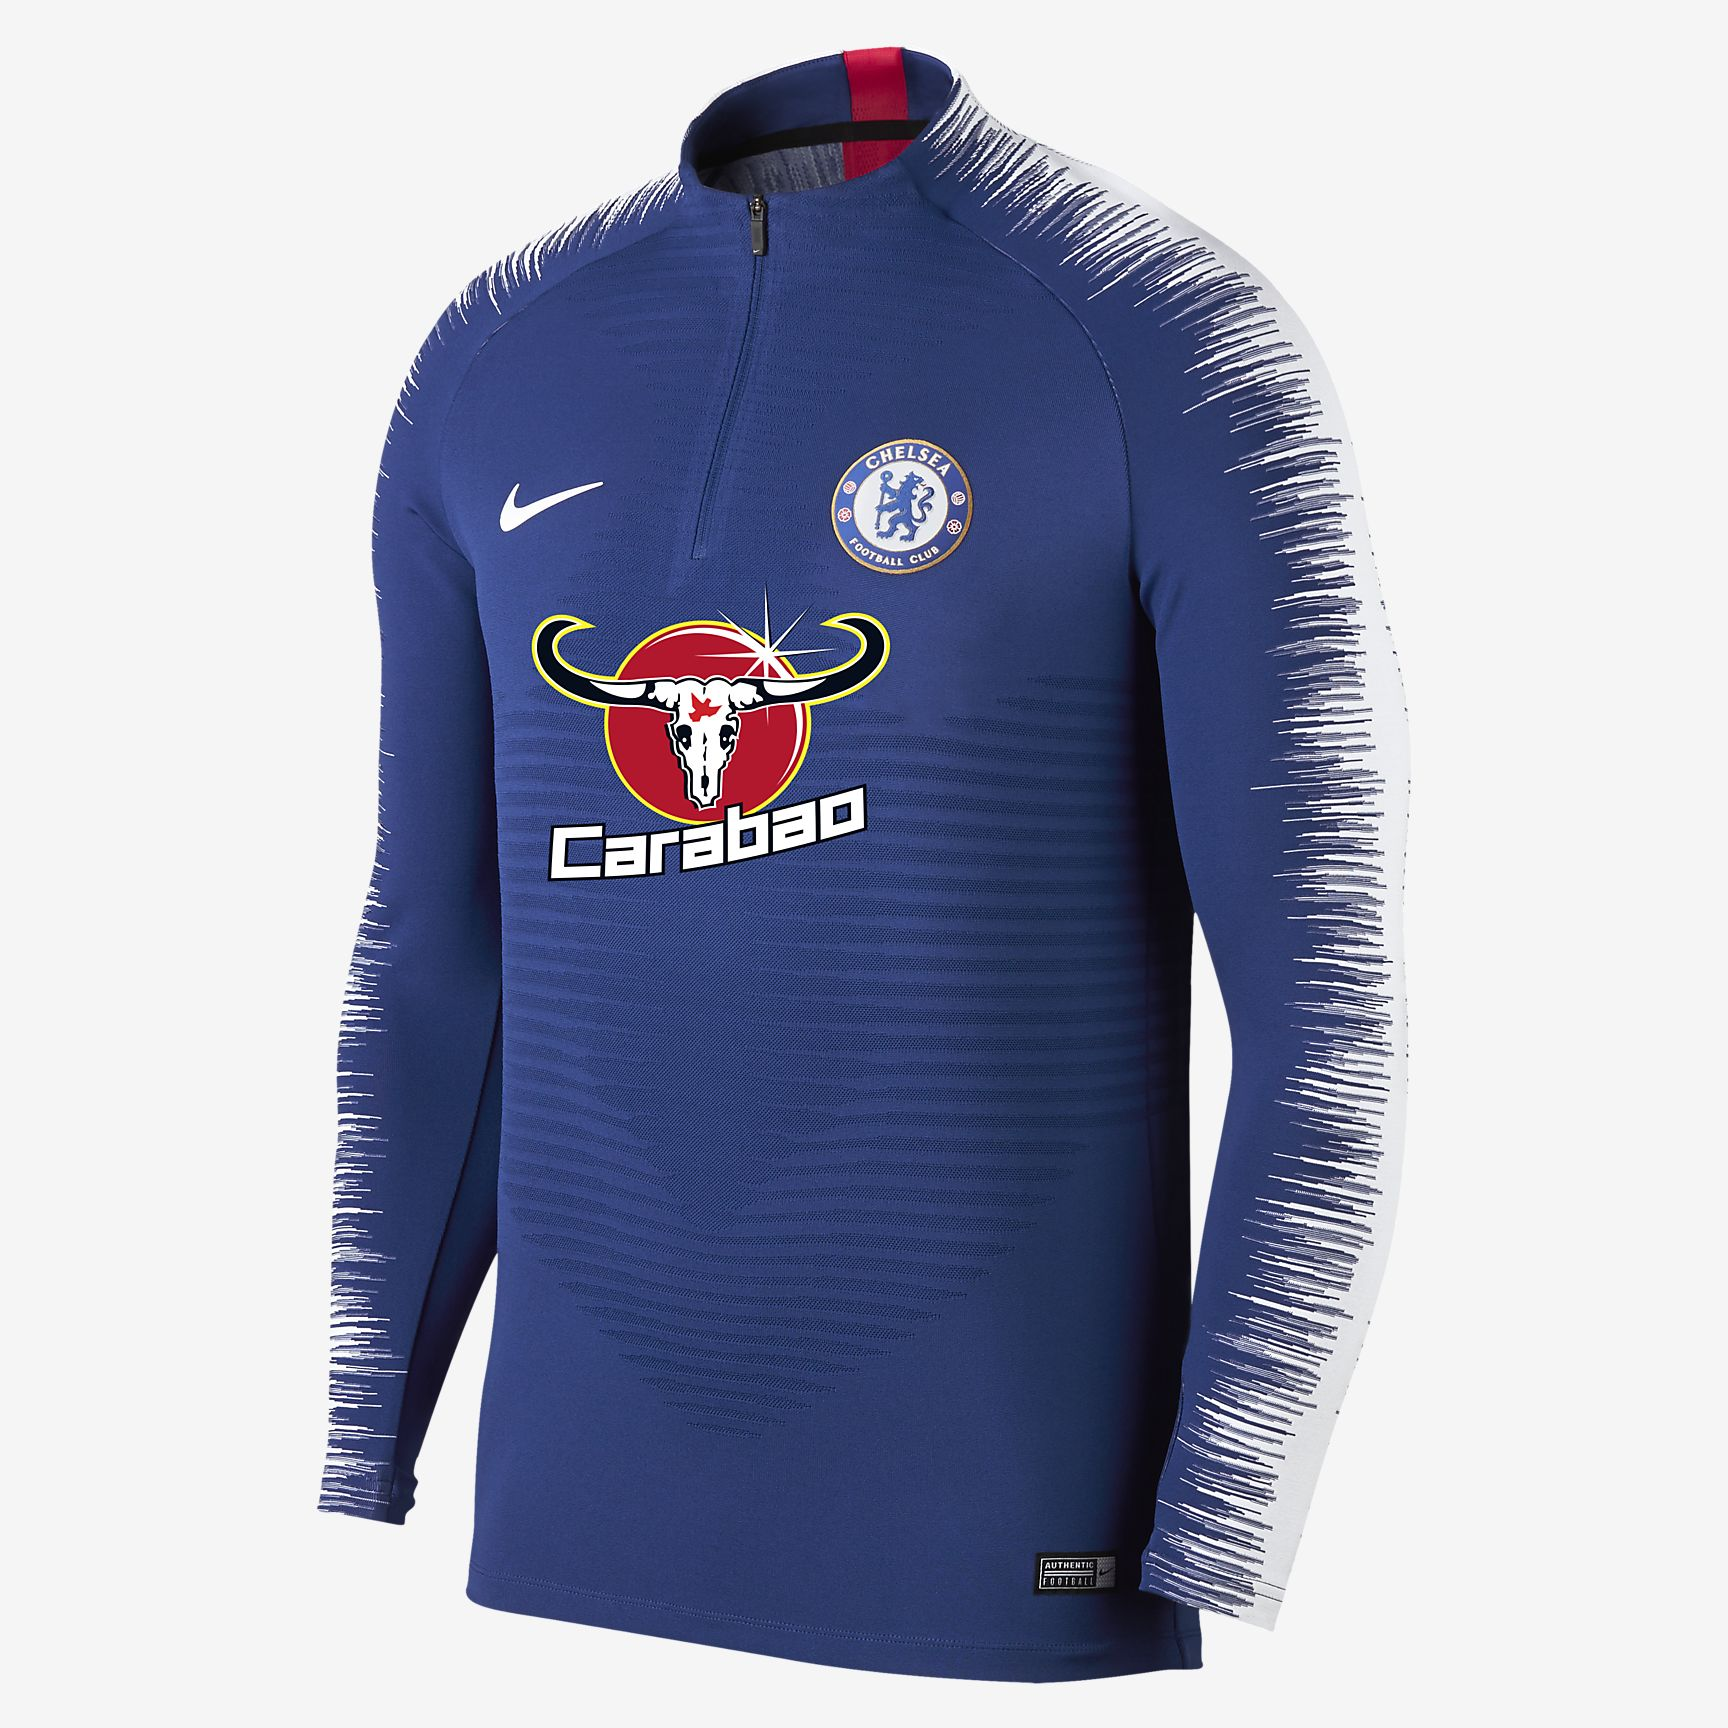 734c0791a Nike Chelsea FC 2018-19 VaporKnit Strike Drill Long Sleeve Football Top -  Soccer Shop London Chelsea Merchandise - Superfanas.lt